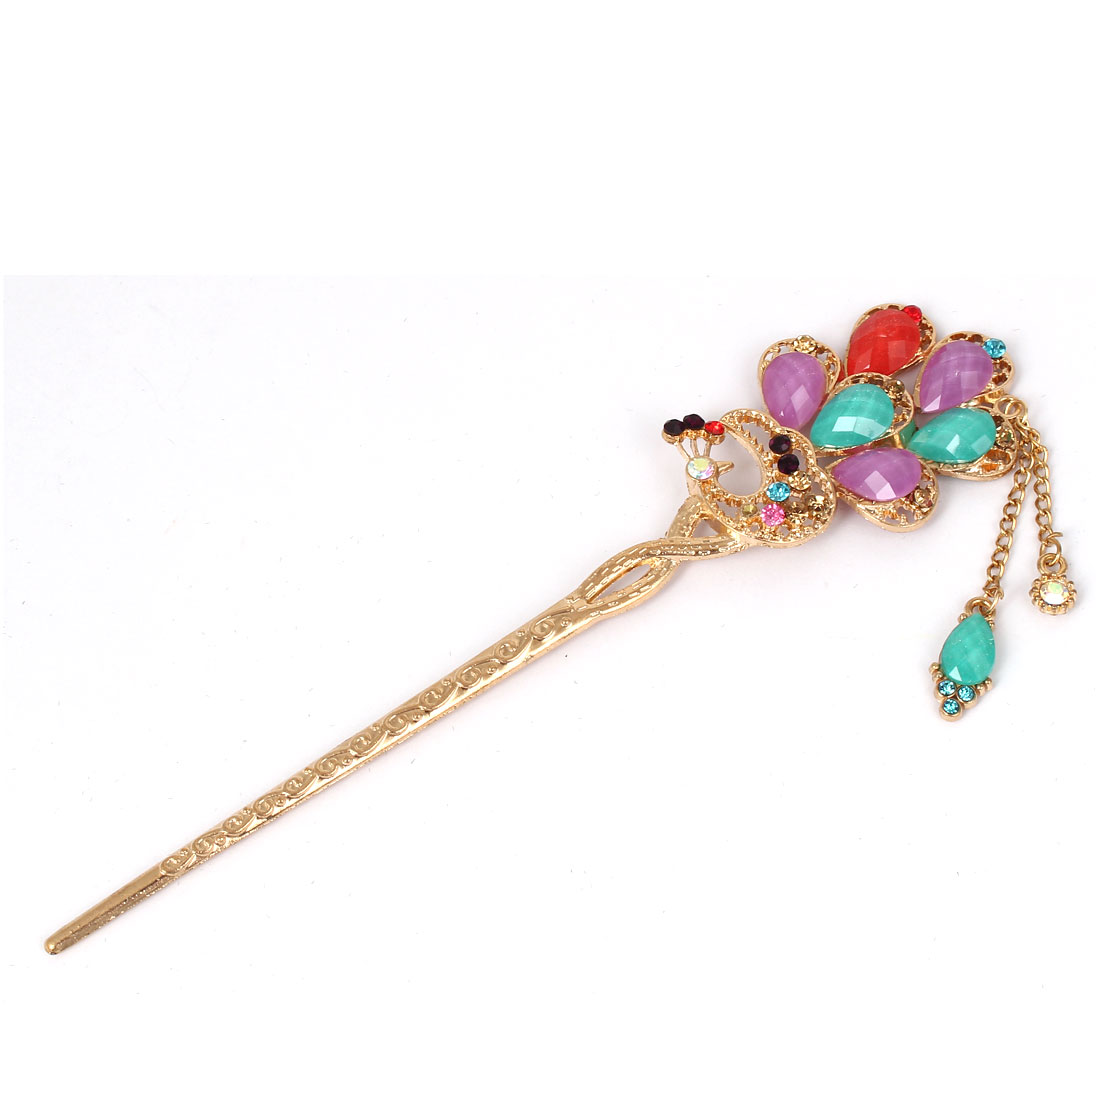 Women Faux Rhinestone Decor Peacock Shaped Hairpin Hair Clasp Stick Colorful